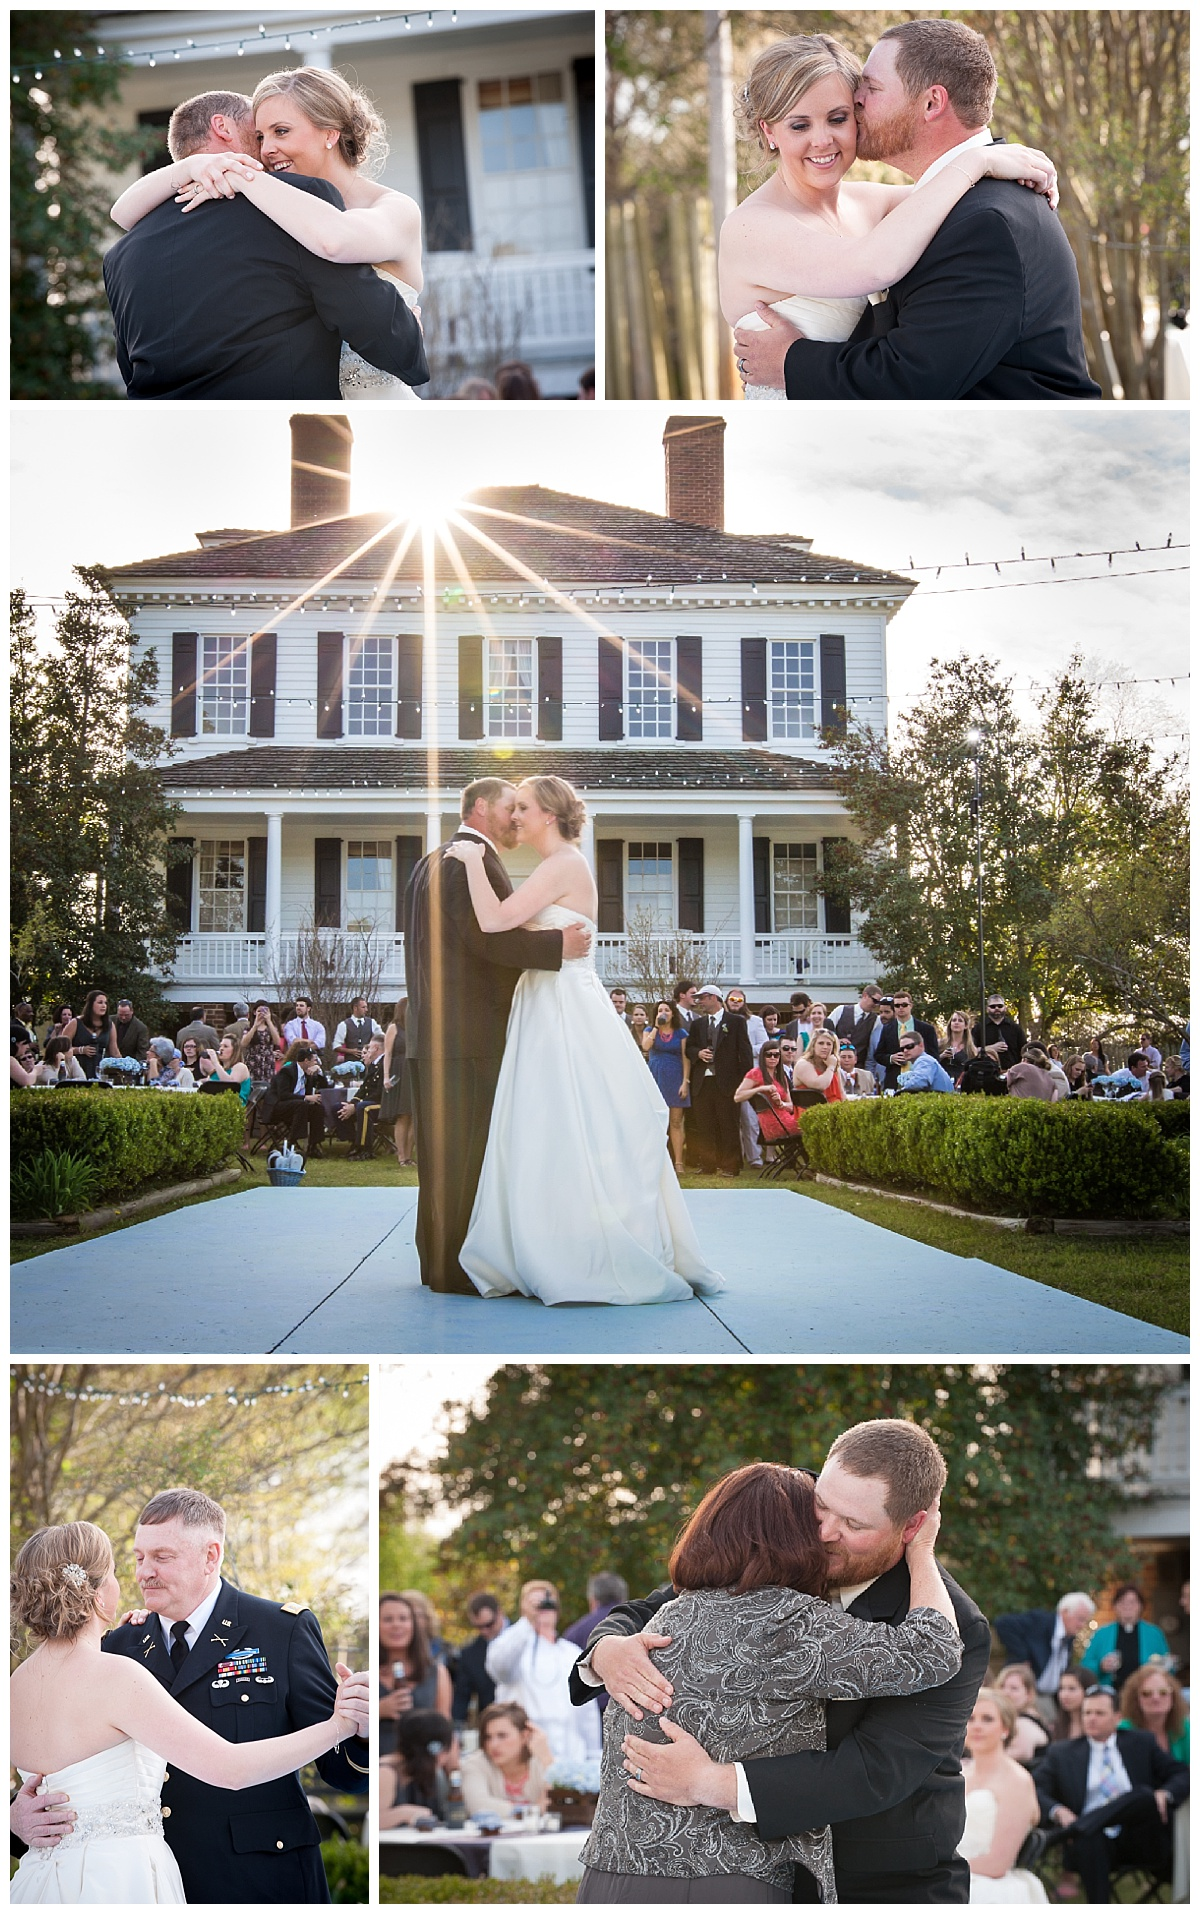 Sunset reception and first dances at Kershaw Cornwallis house